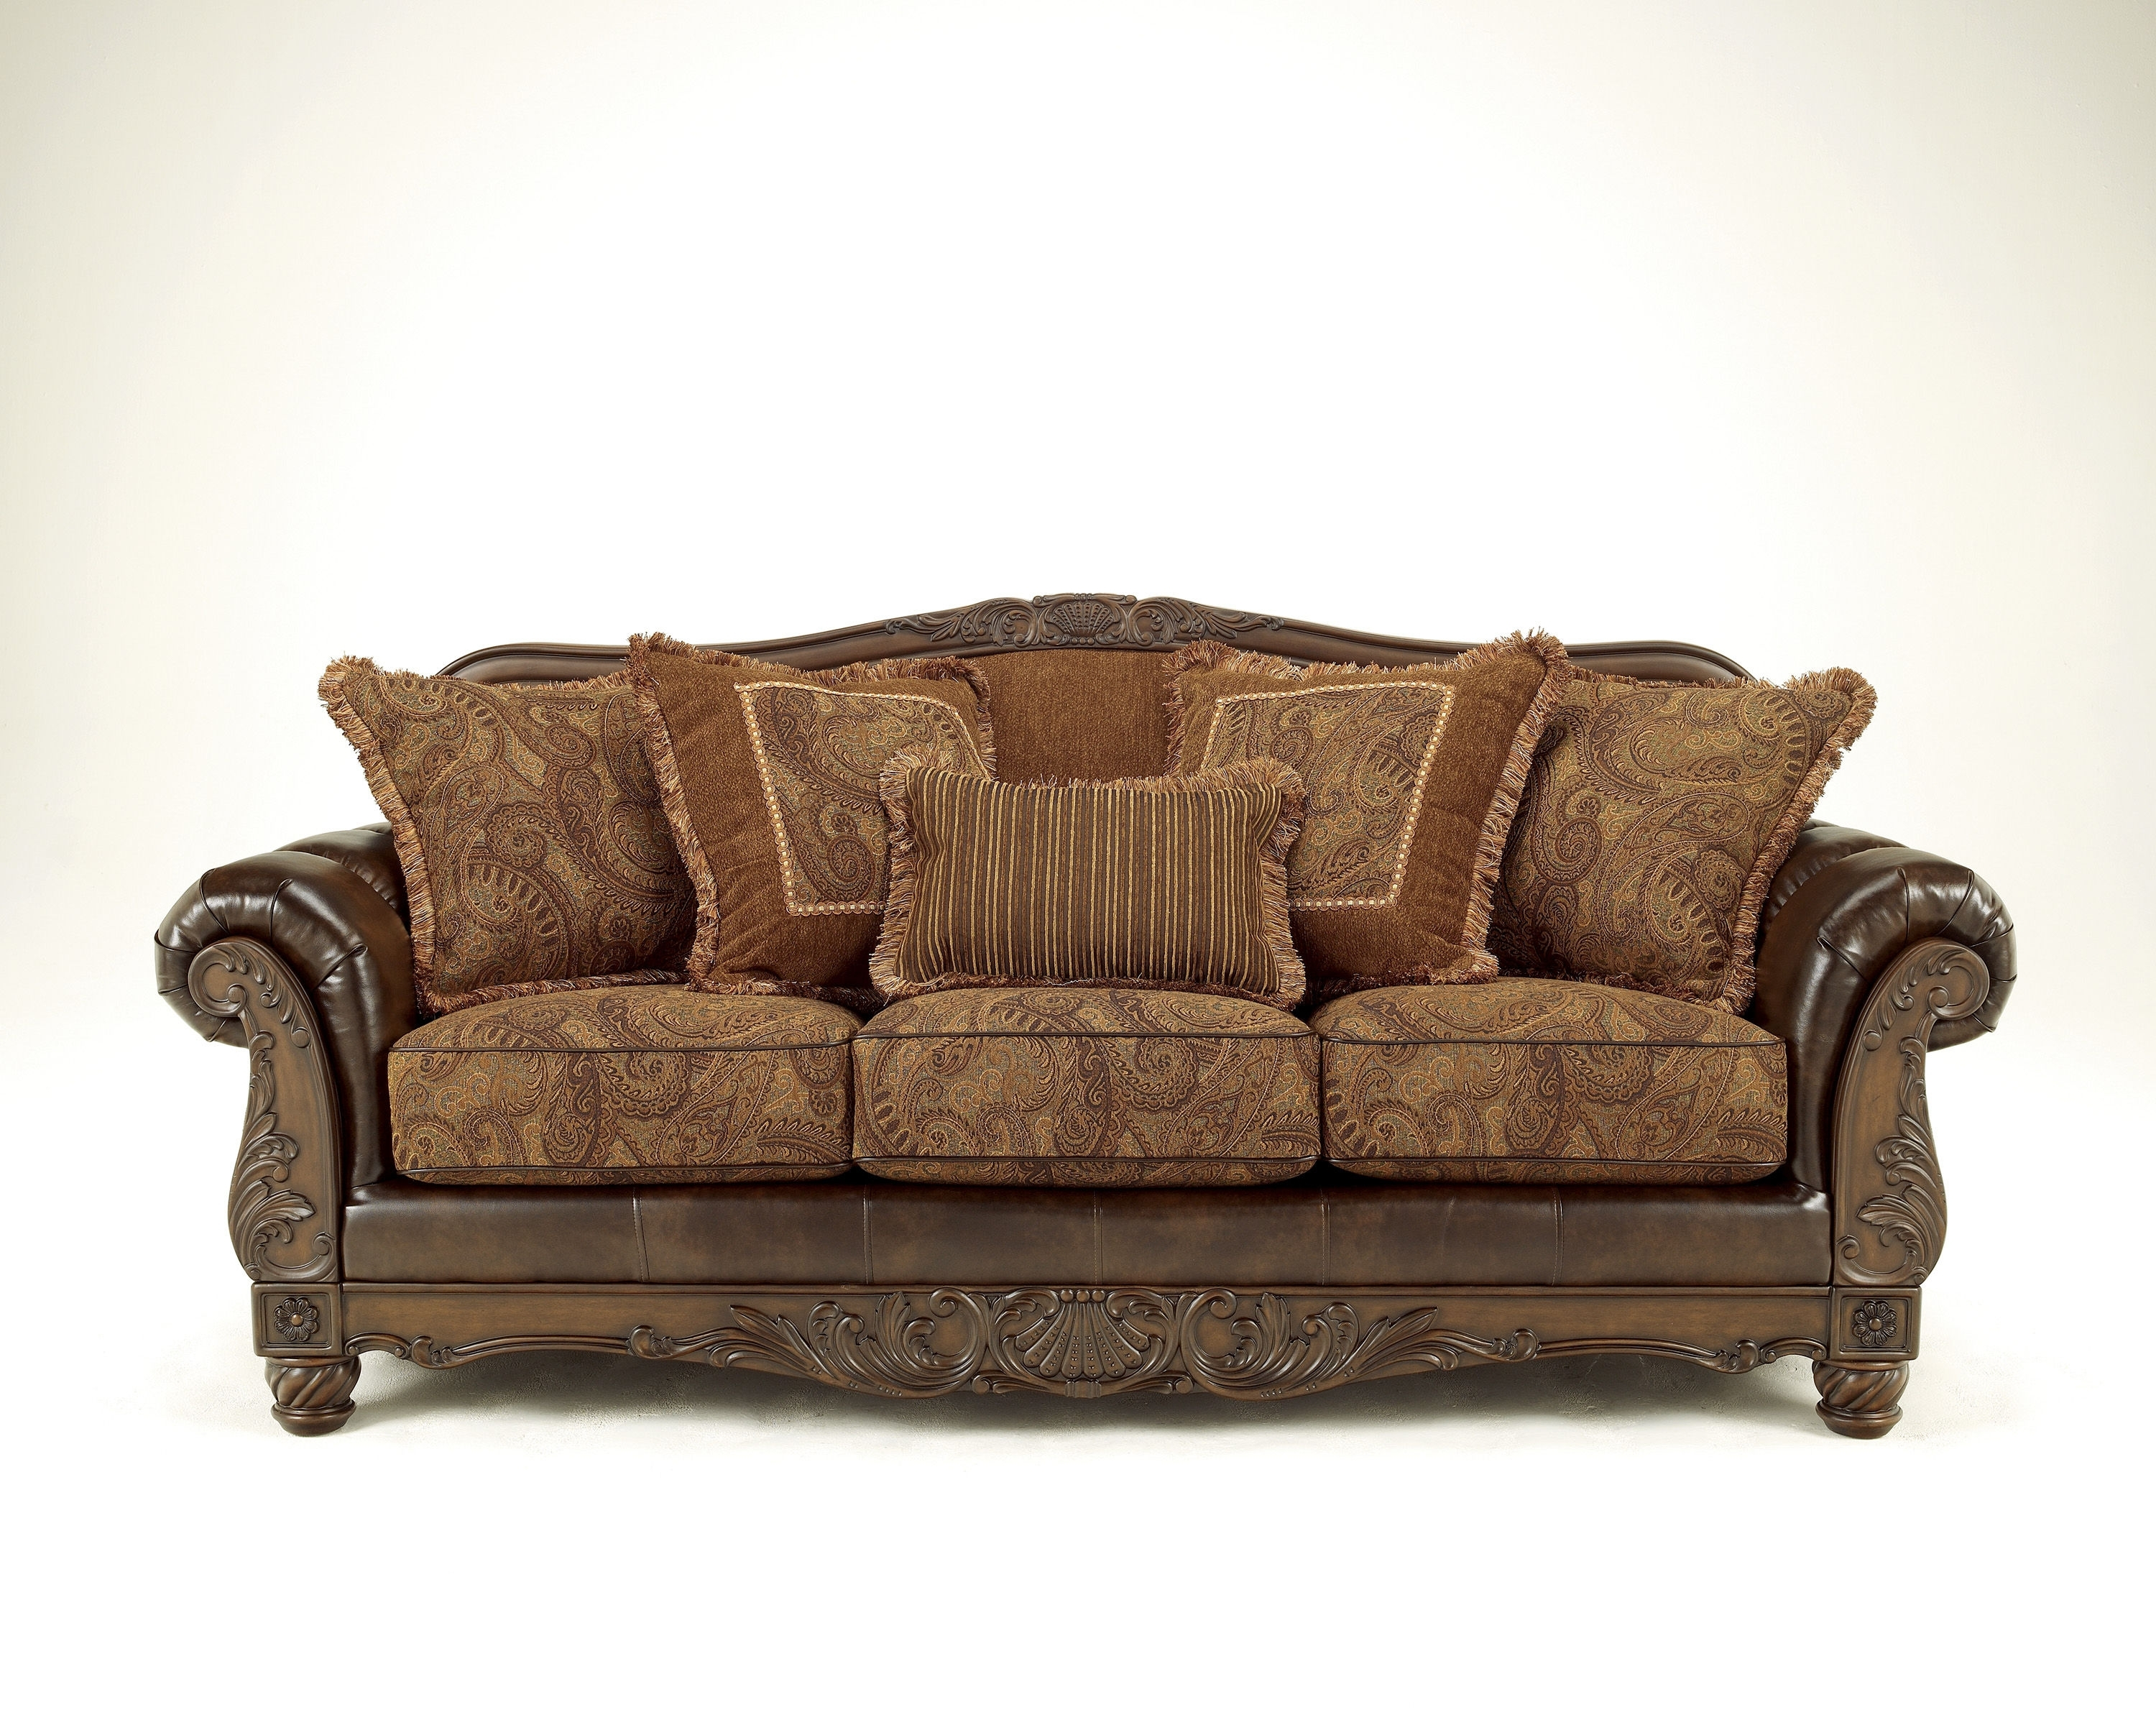 Antique Sofas For Current Ashley Furniture Fresco Durablend Antique Sofa (View 15 of 15)